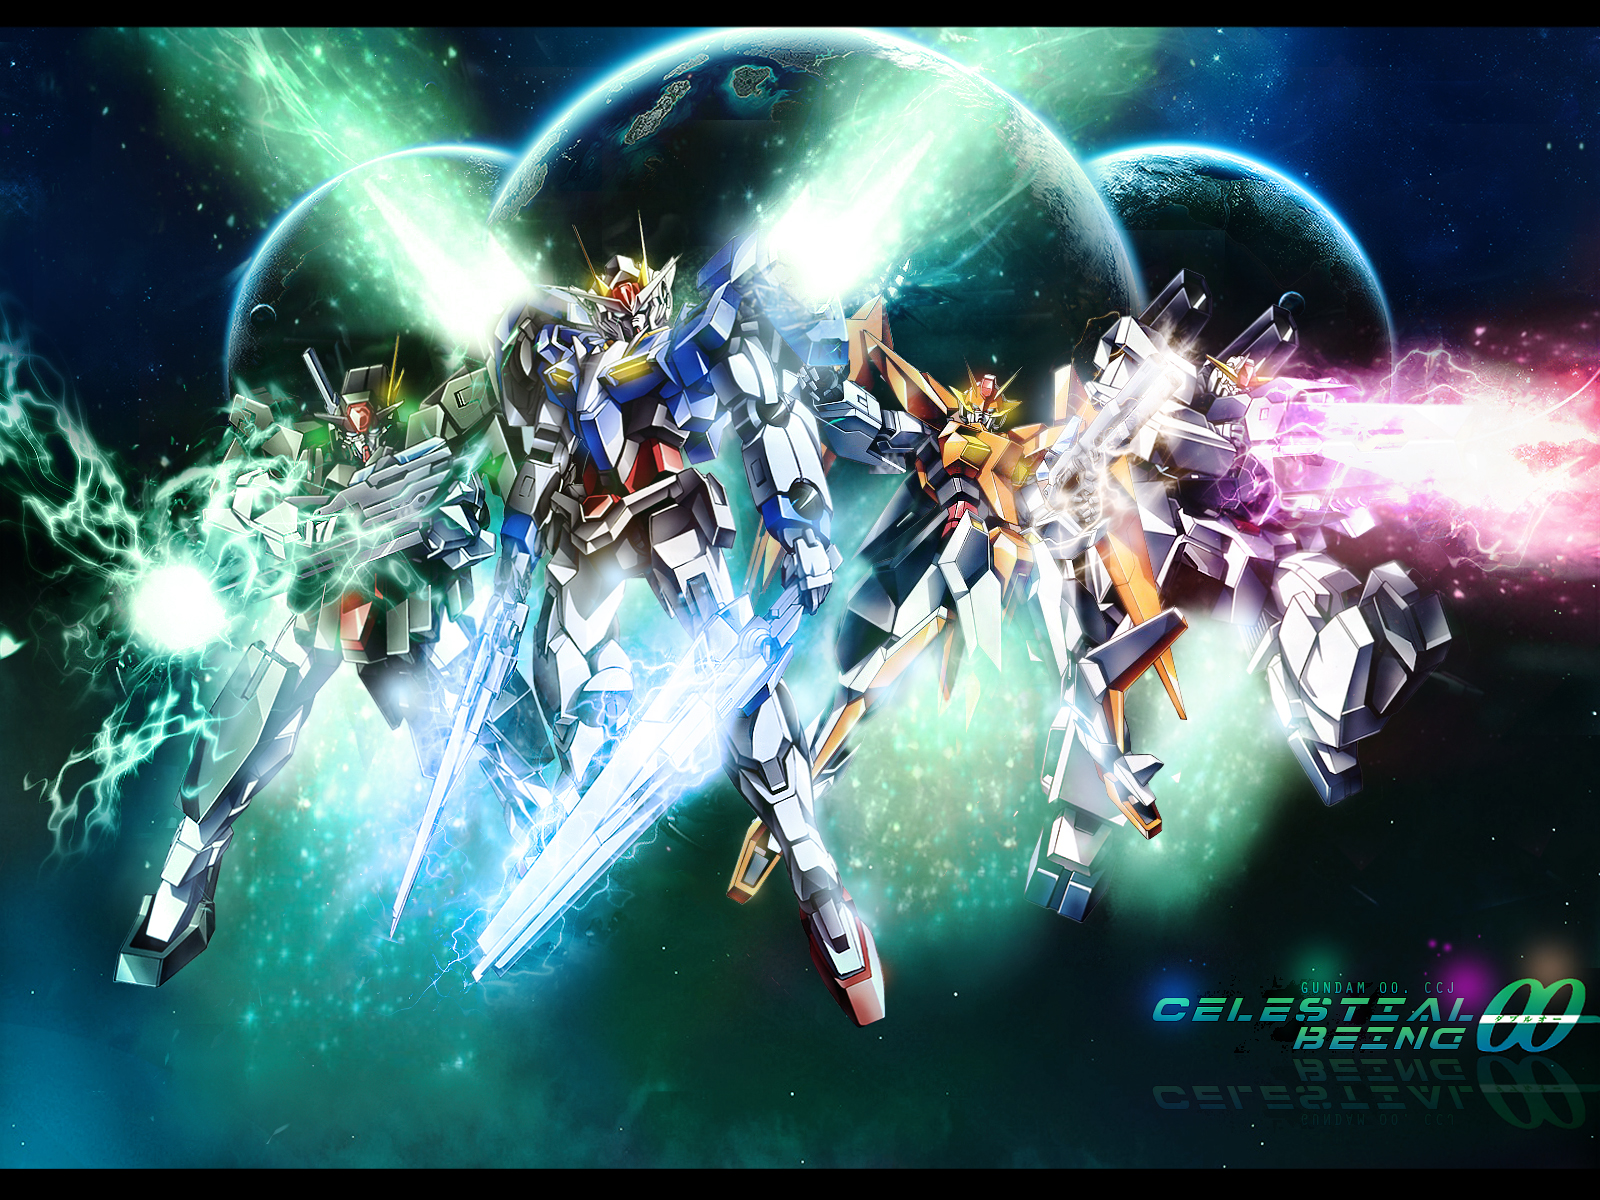 Mobile Suit Gundam 00 Wallpaper #186245 - Zerochan Anime Image Board